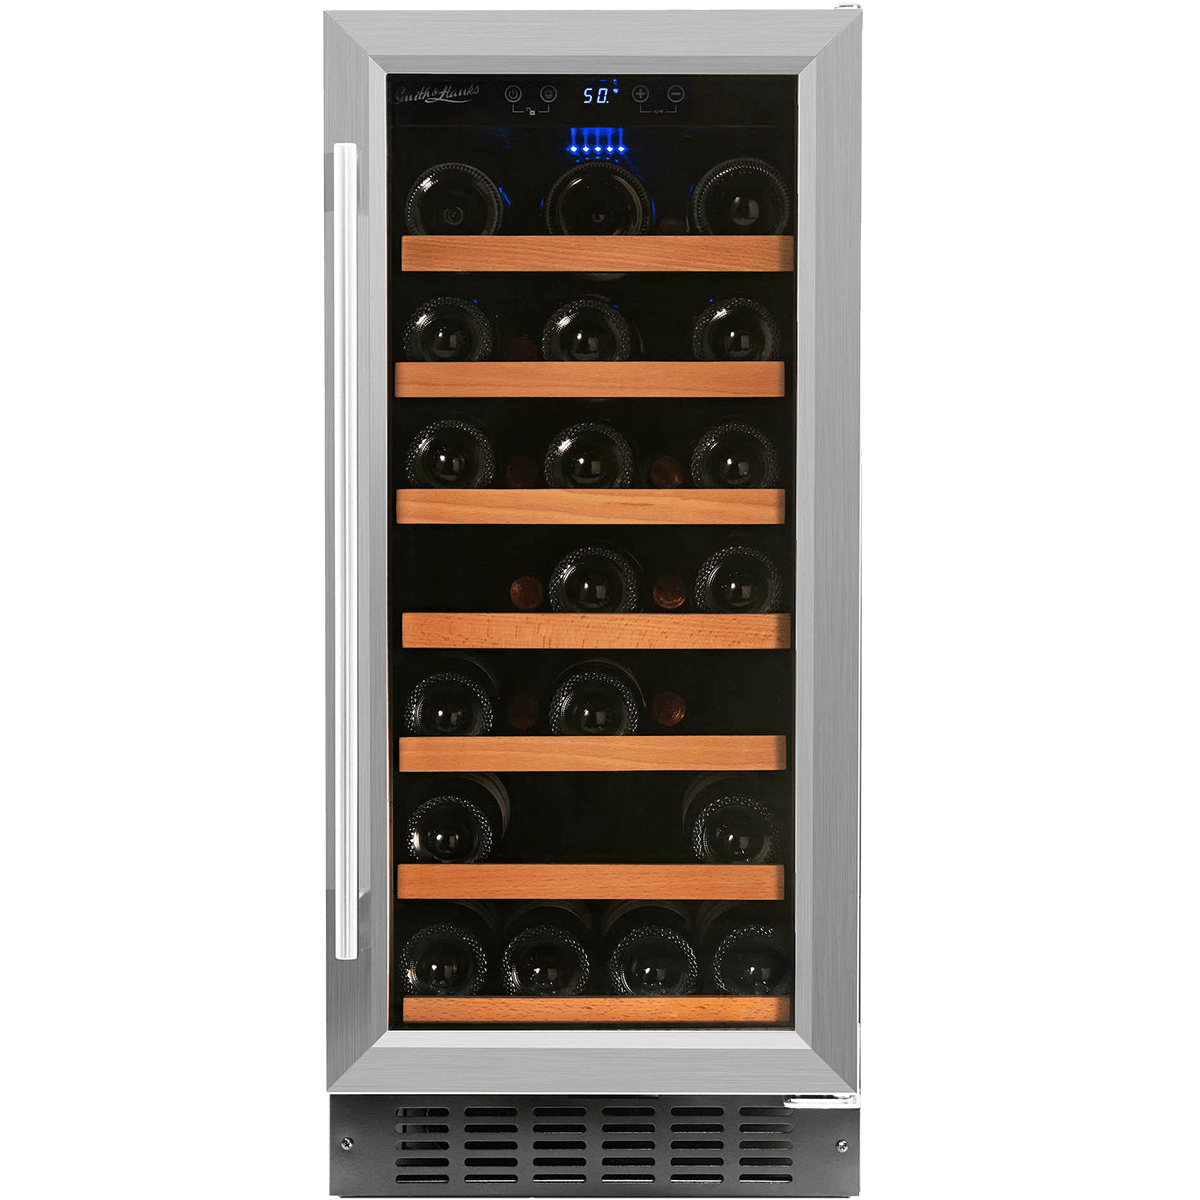 Smith & Hanks 34 Bottle Single Zone Wine Cooler, Stainless Steel Door Trim